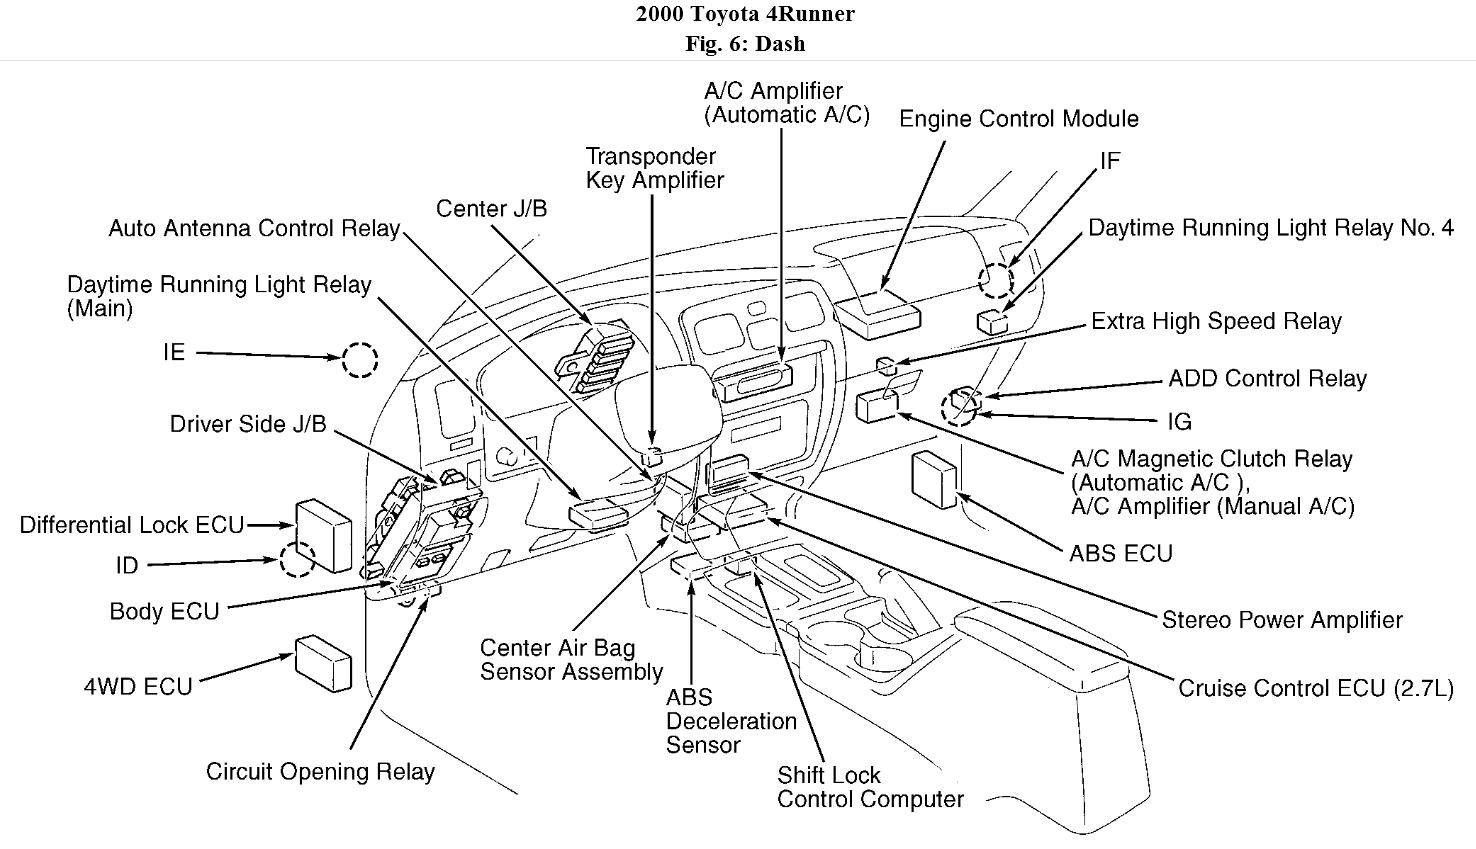 1998 Toyota 4 Runner Fuel Pump Wiring Diagram